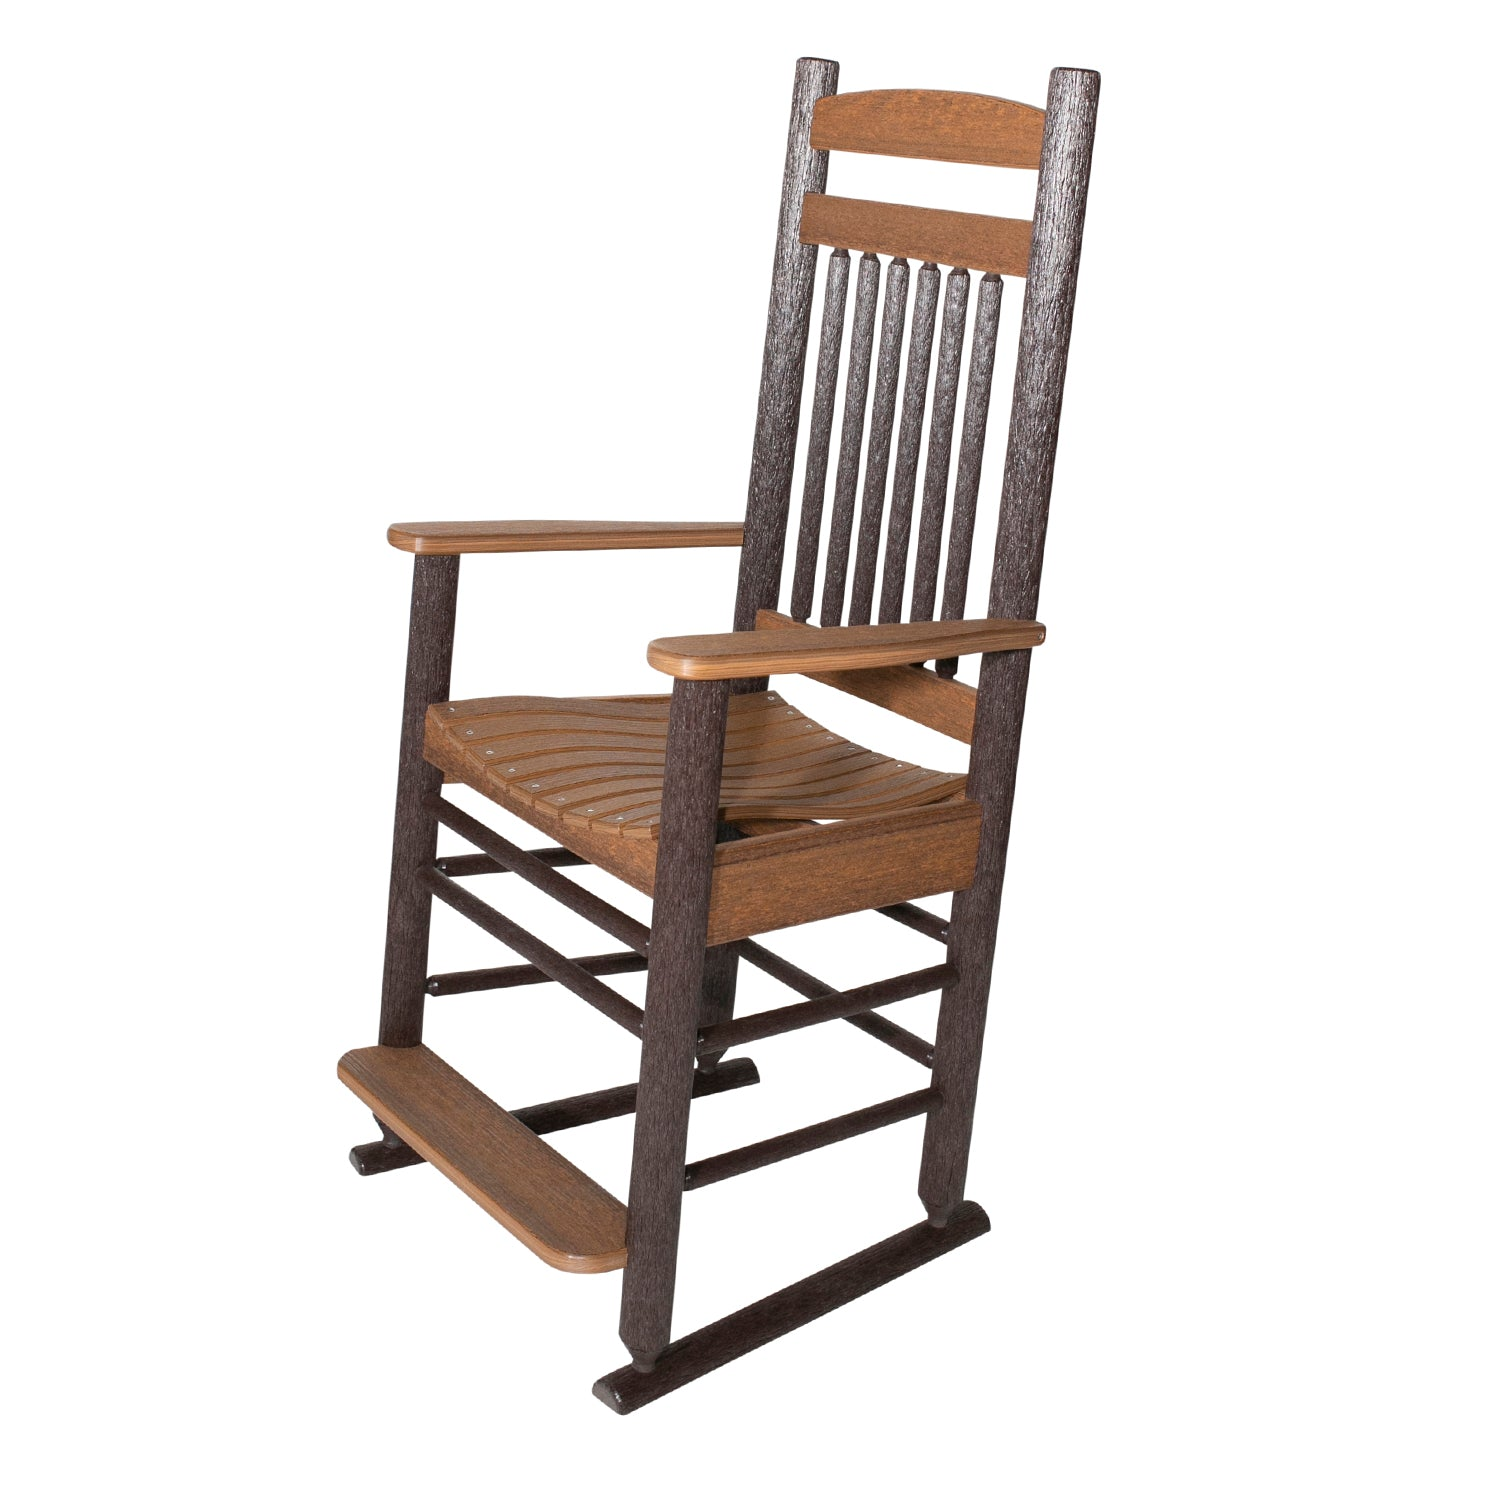 Americana Rustic PolyLog Balcony Height Captain's Chair